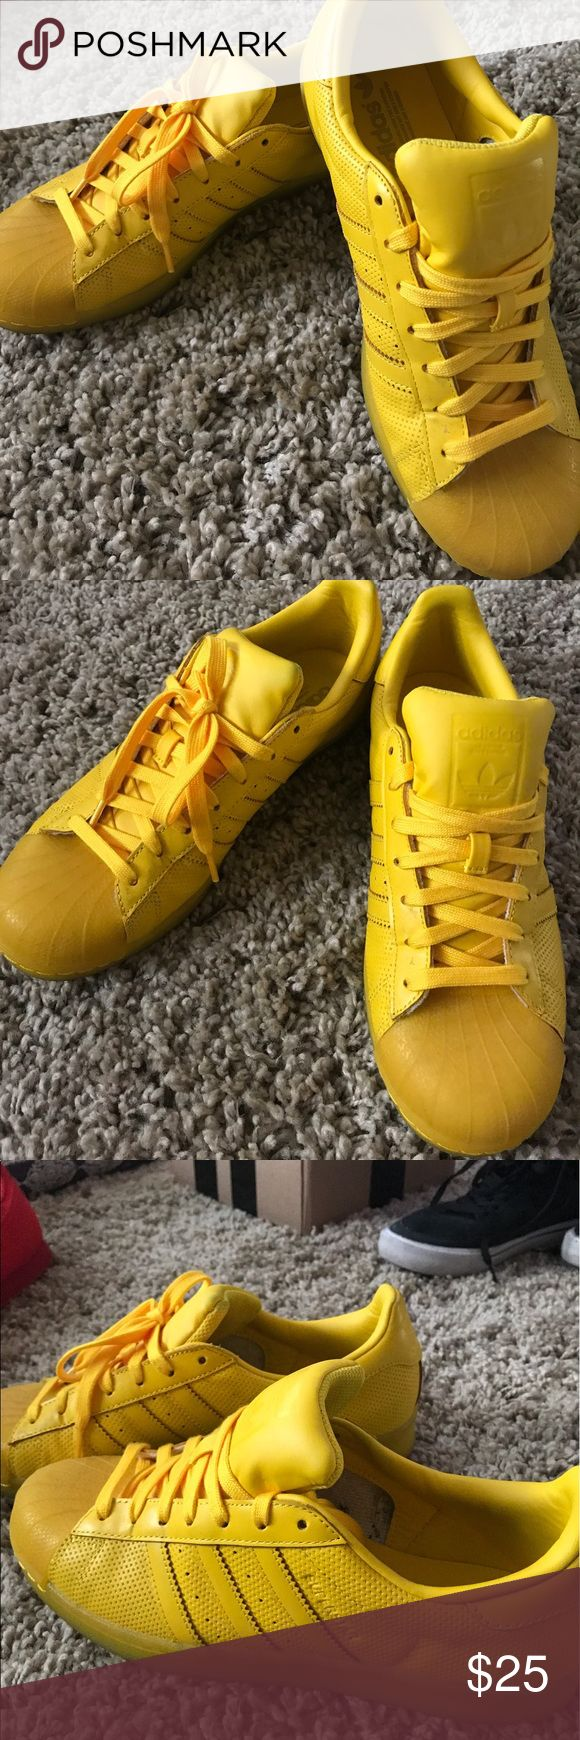 Yellow shell toe Adidas Shell toe style Adidas. Bright yellow, like new adidas Shoes Athletic Shoes